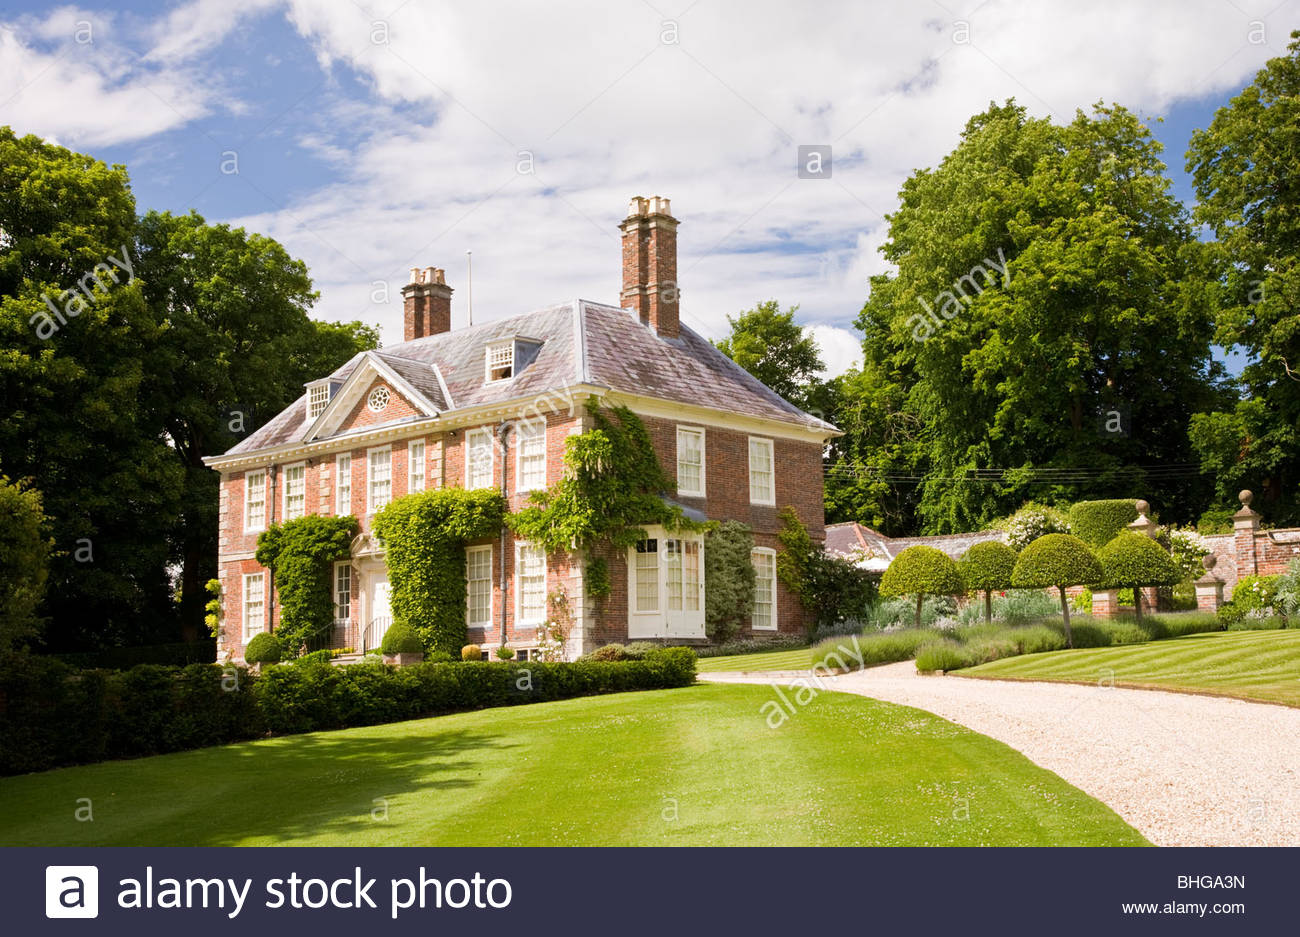 An English Queen Anne Country House Or Manor Approached By A Sweeping Gravel Drive In England UK